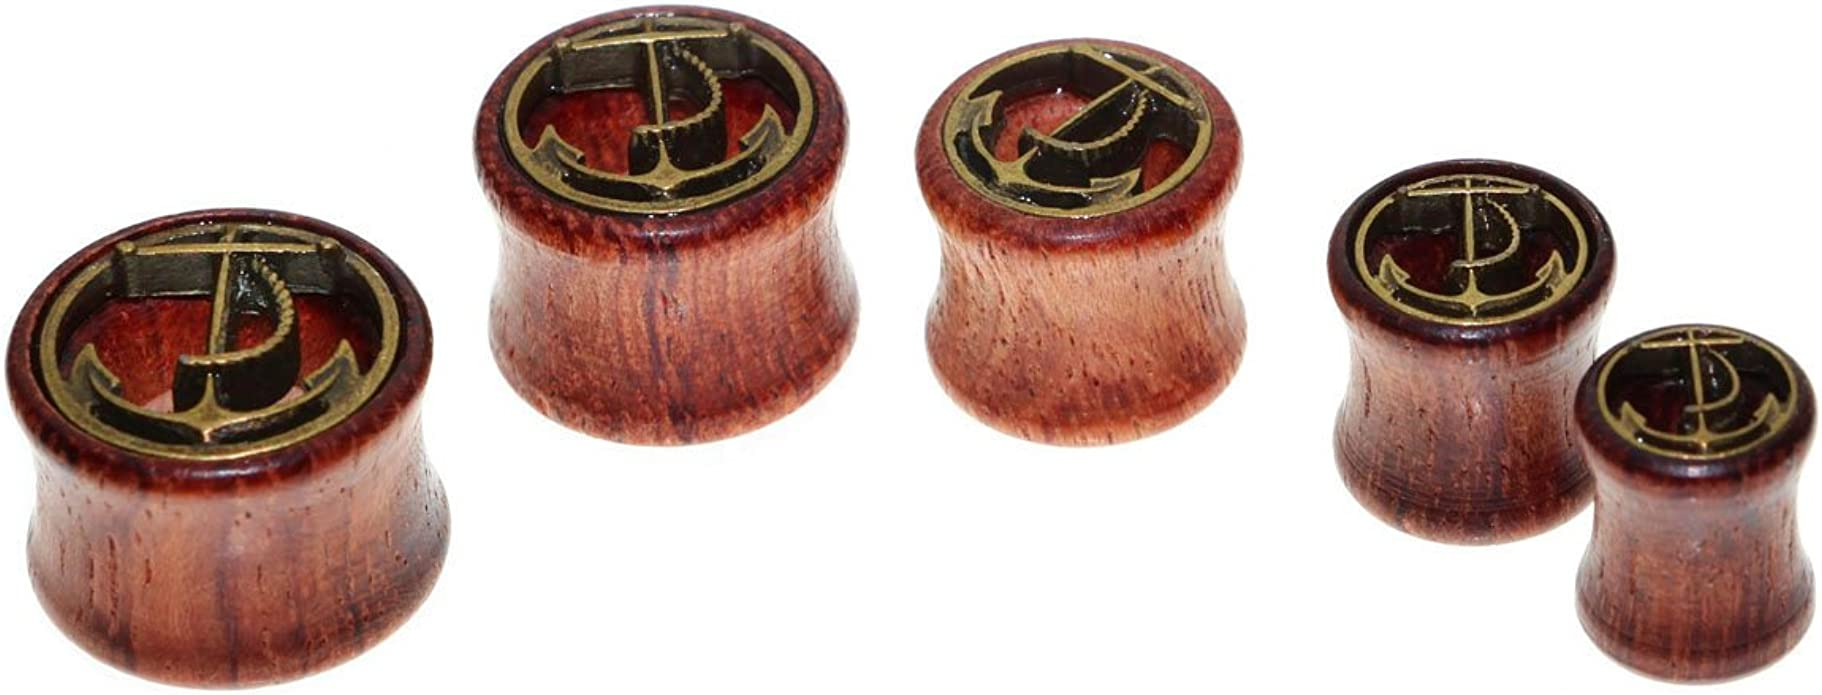 8mm-20mm oreja Plug marrón madera natural túnel Organic piercing Wood Saddle color marrón-rojizo